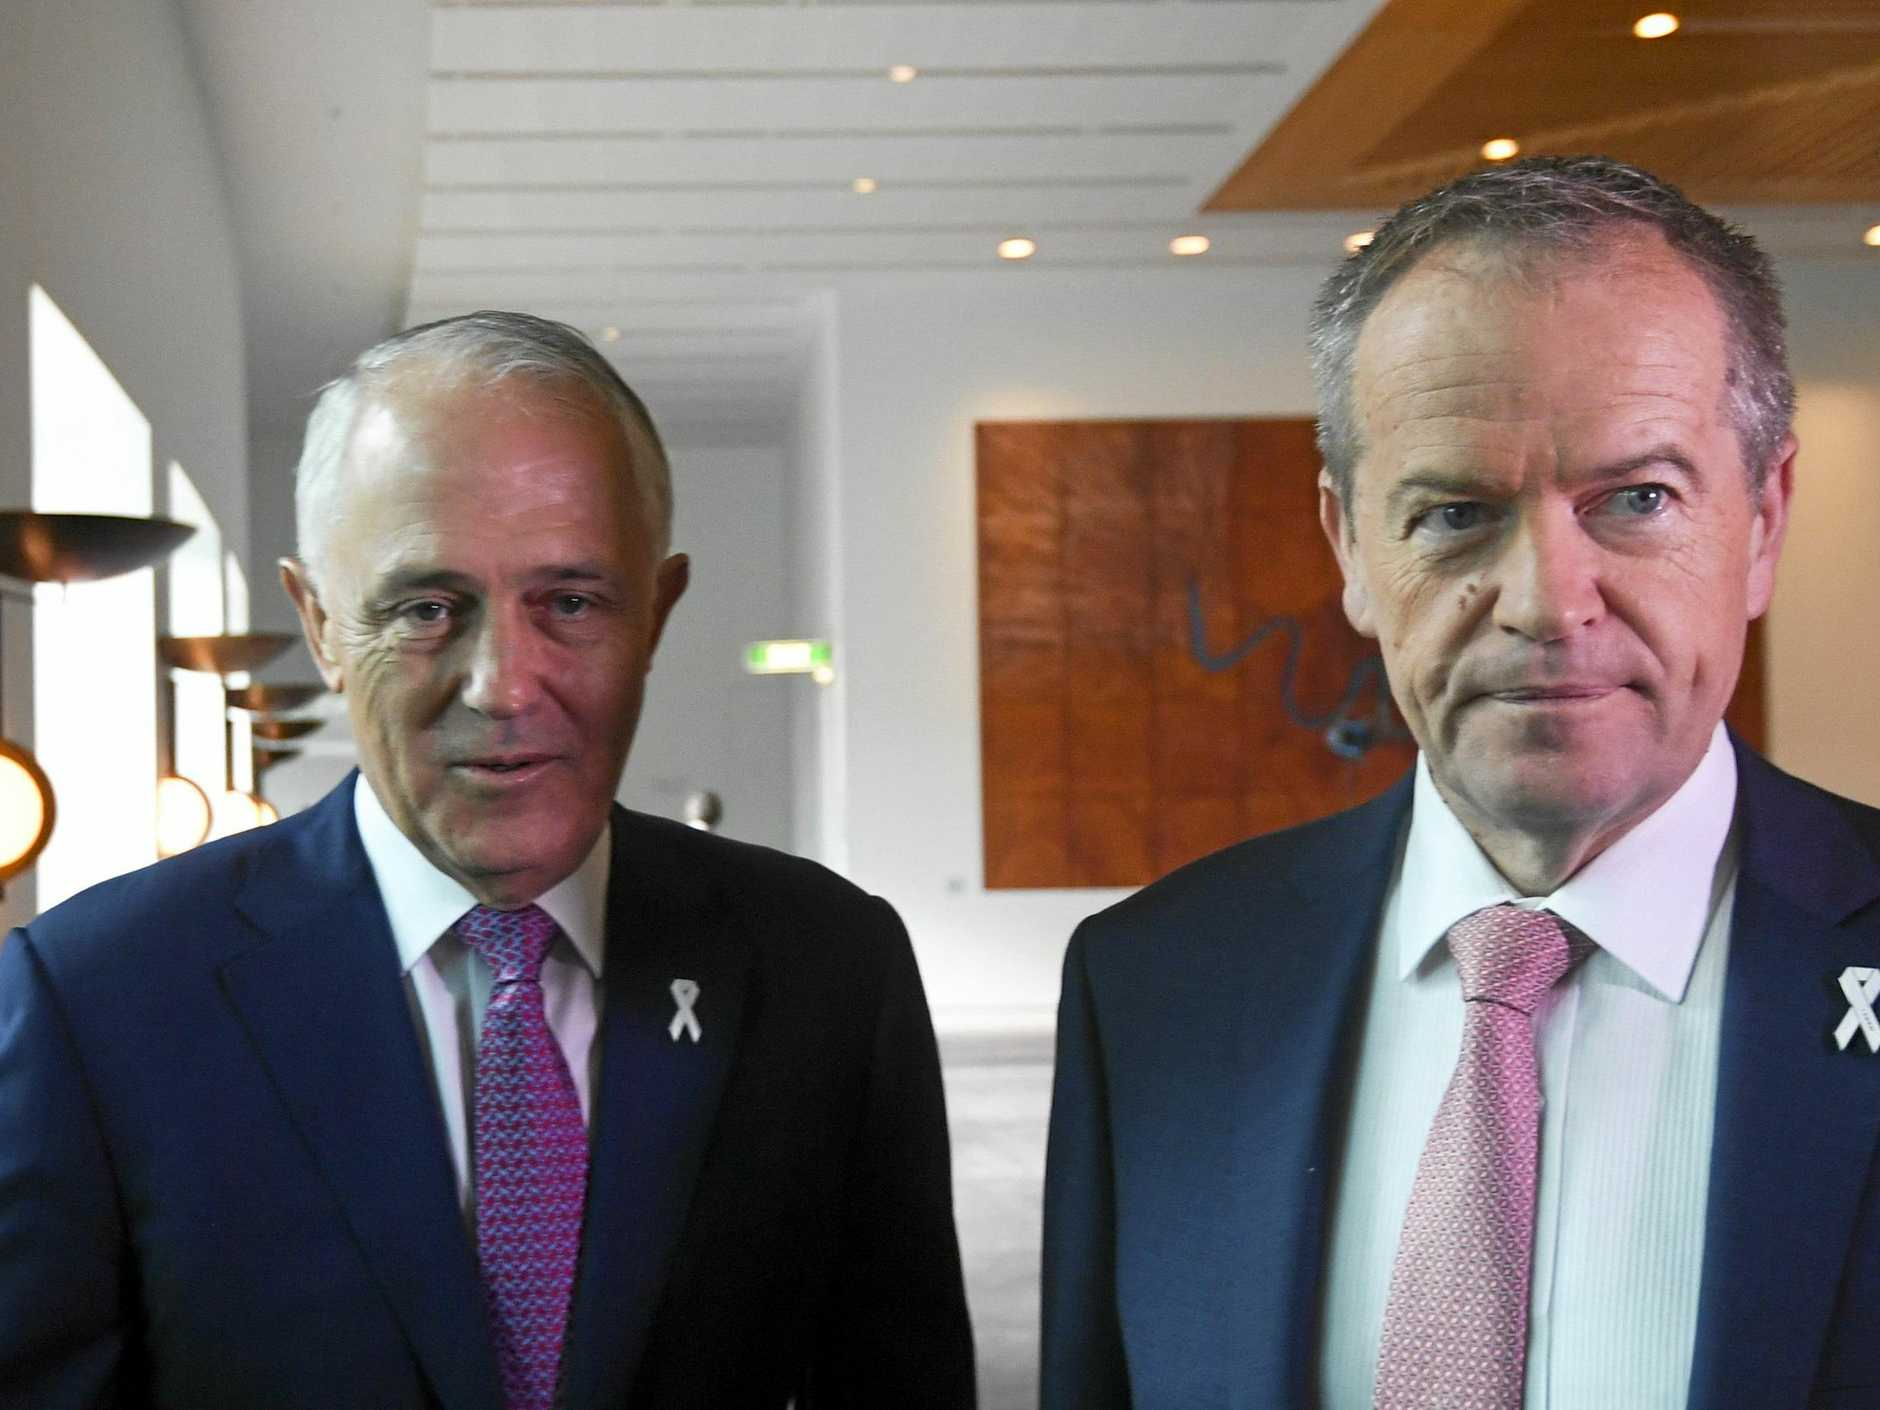 TOKENISM: Australian Opposition Leader Bill Shorten (right) and then Australian Prime Minister Malcolm Turnbull arrive at a White Ribbon Day Parliamentary Breakfast at Parliament House in Canberra last year. There will be white ribbons all over politicians this week but to what avail?